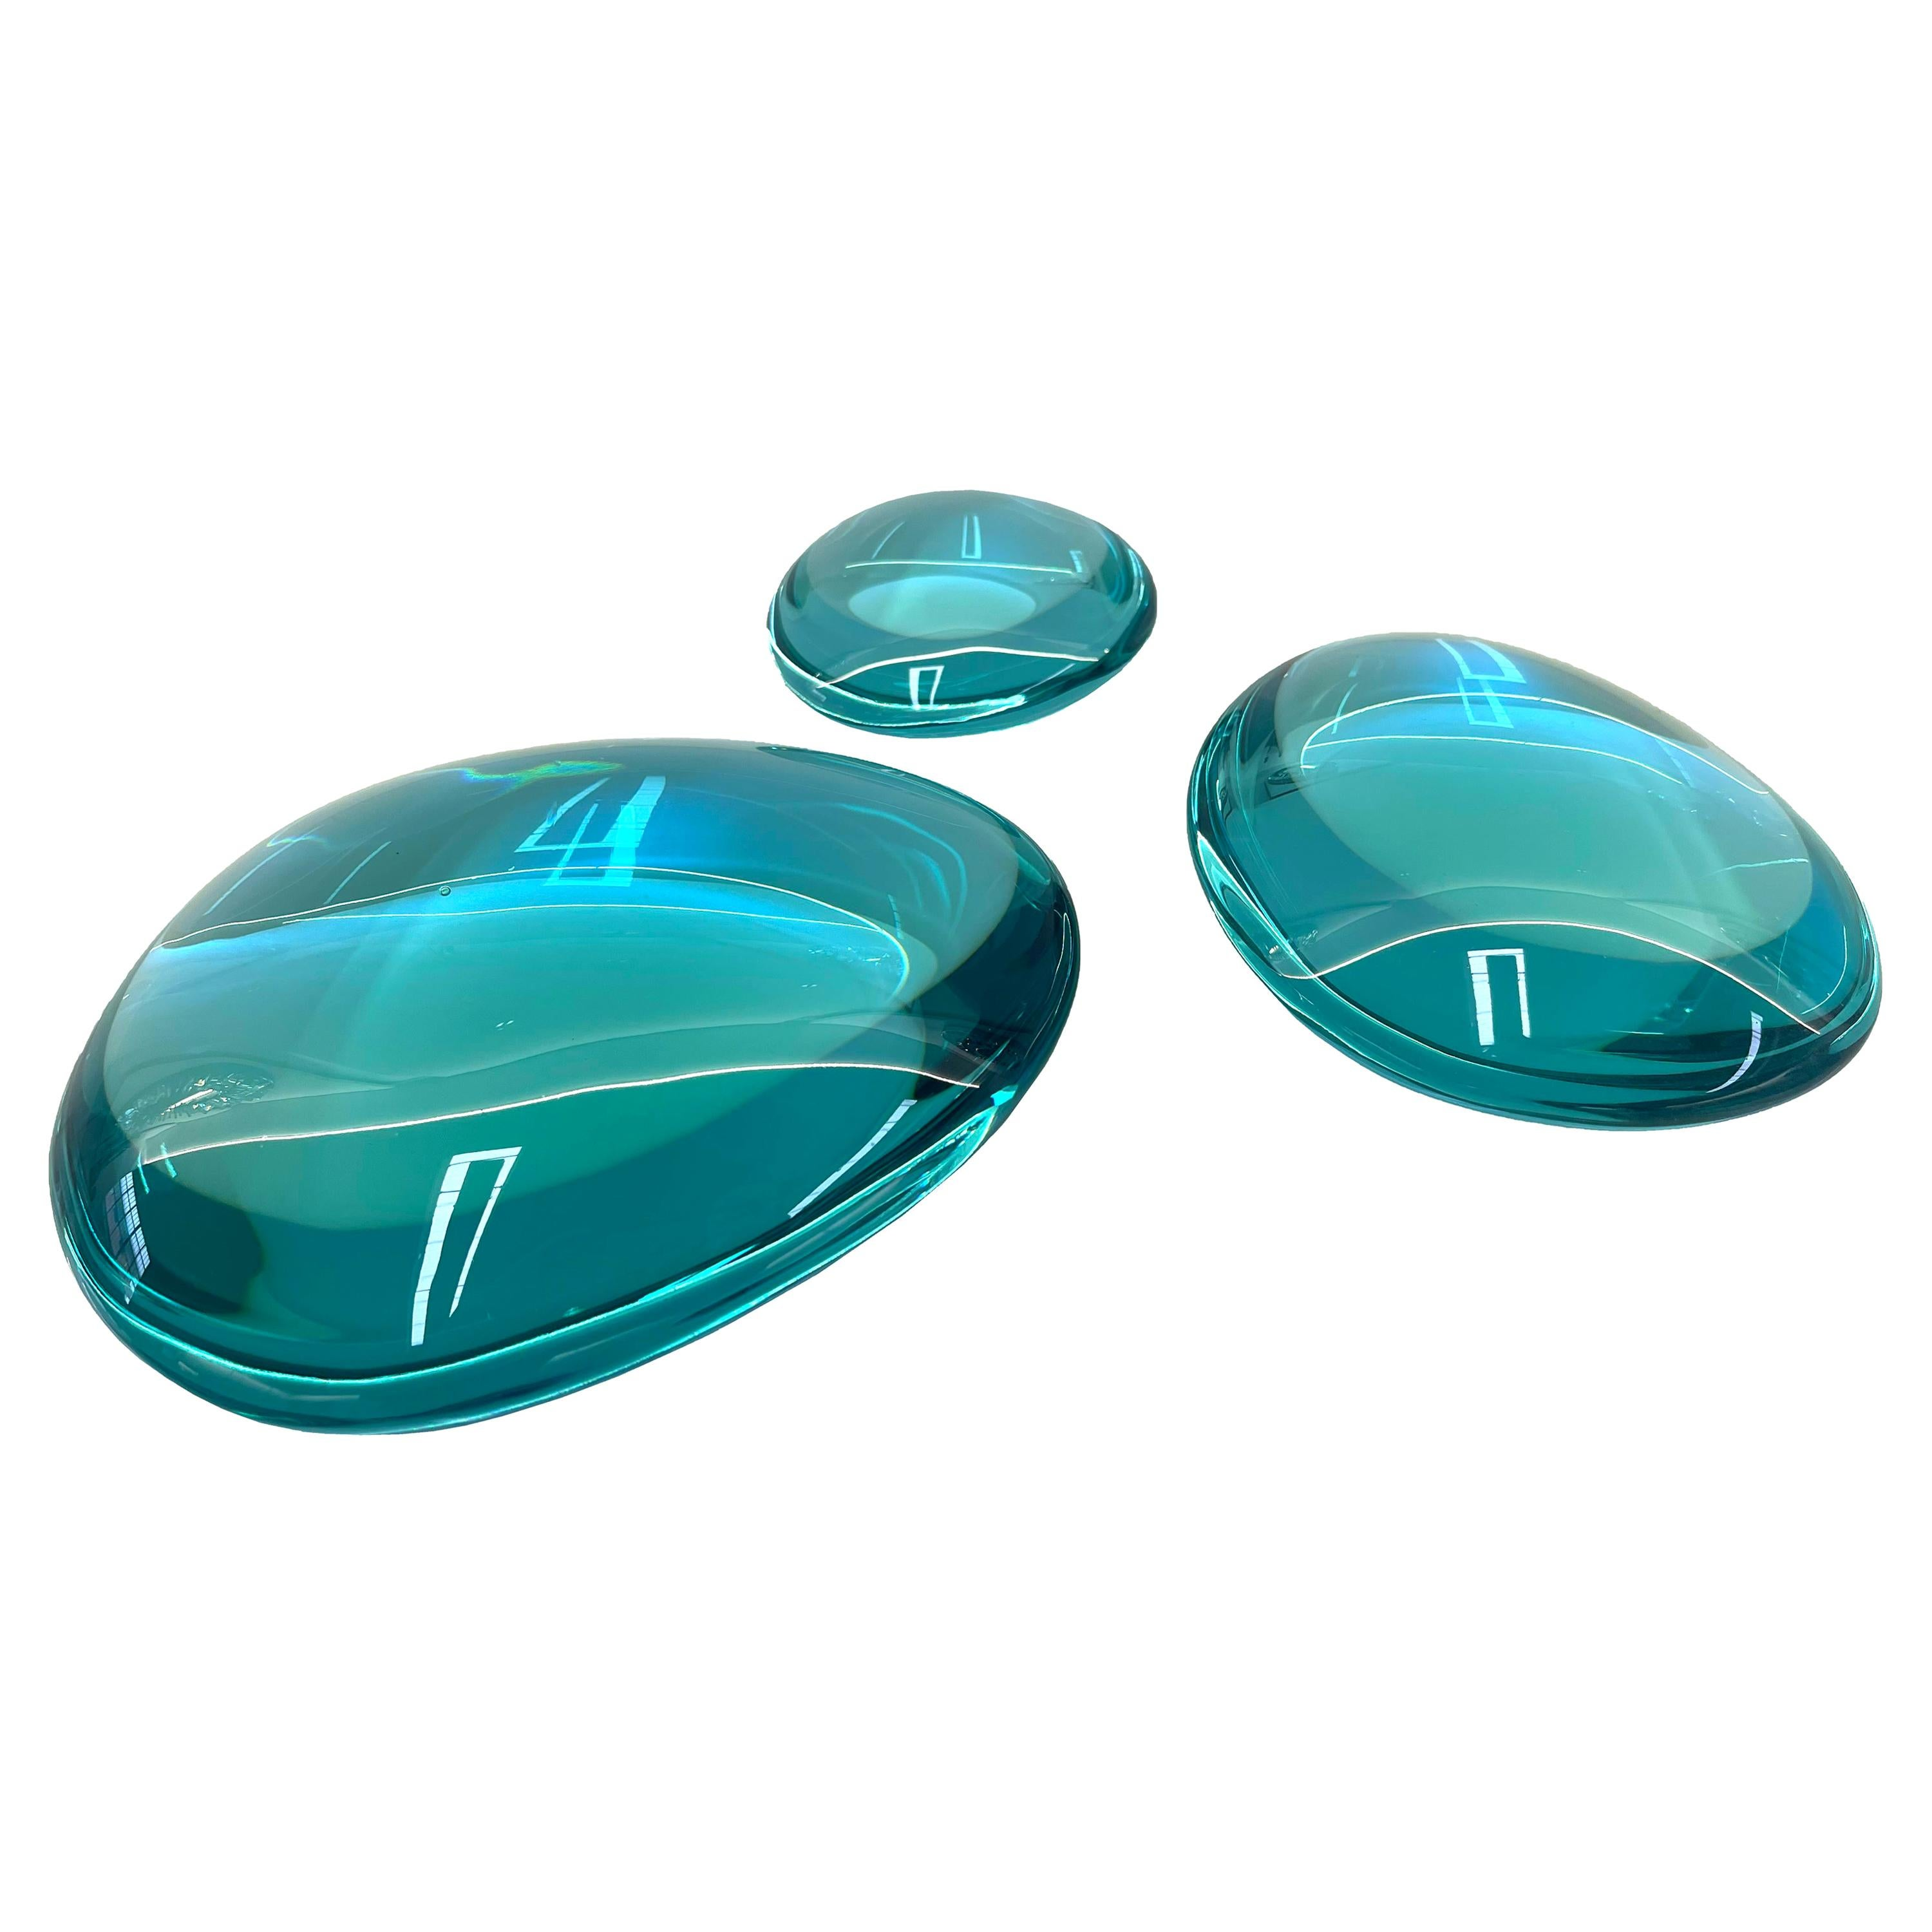 Contemporary by Ghirò Studio 'Gocce' Set of Three Sculptures Aquamarine Crystal